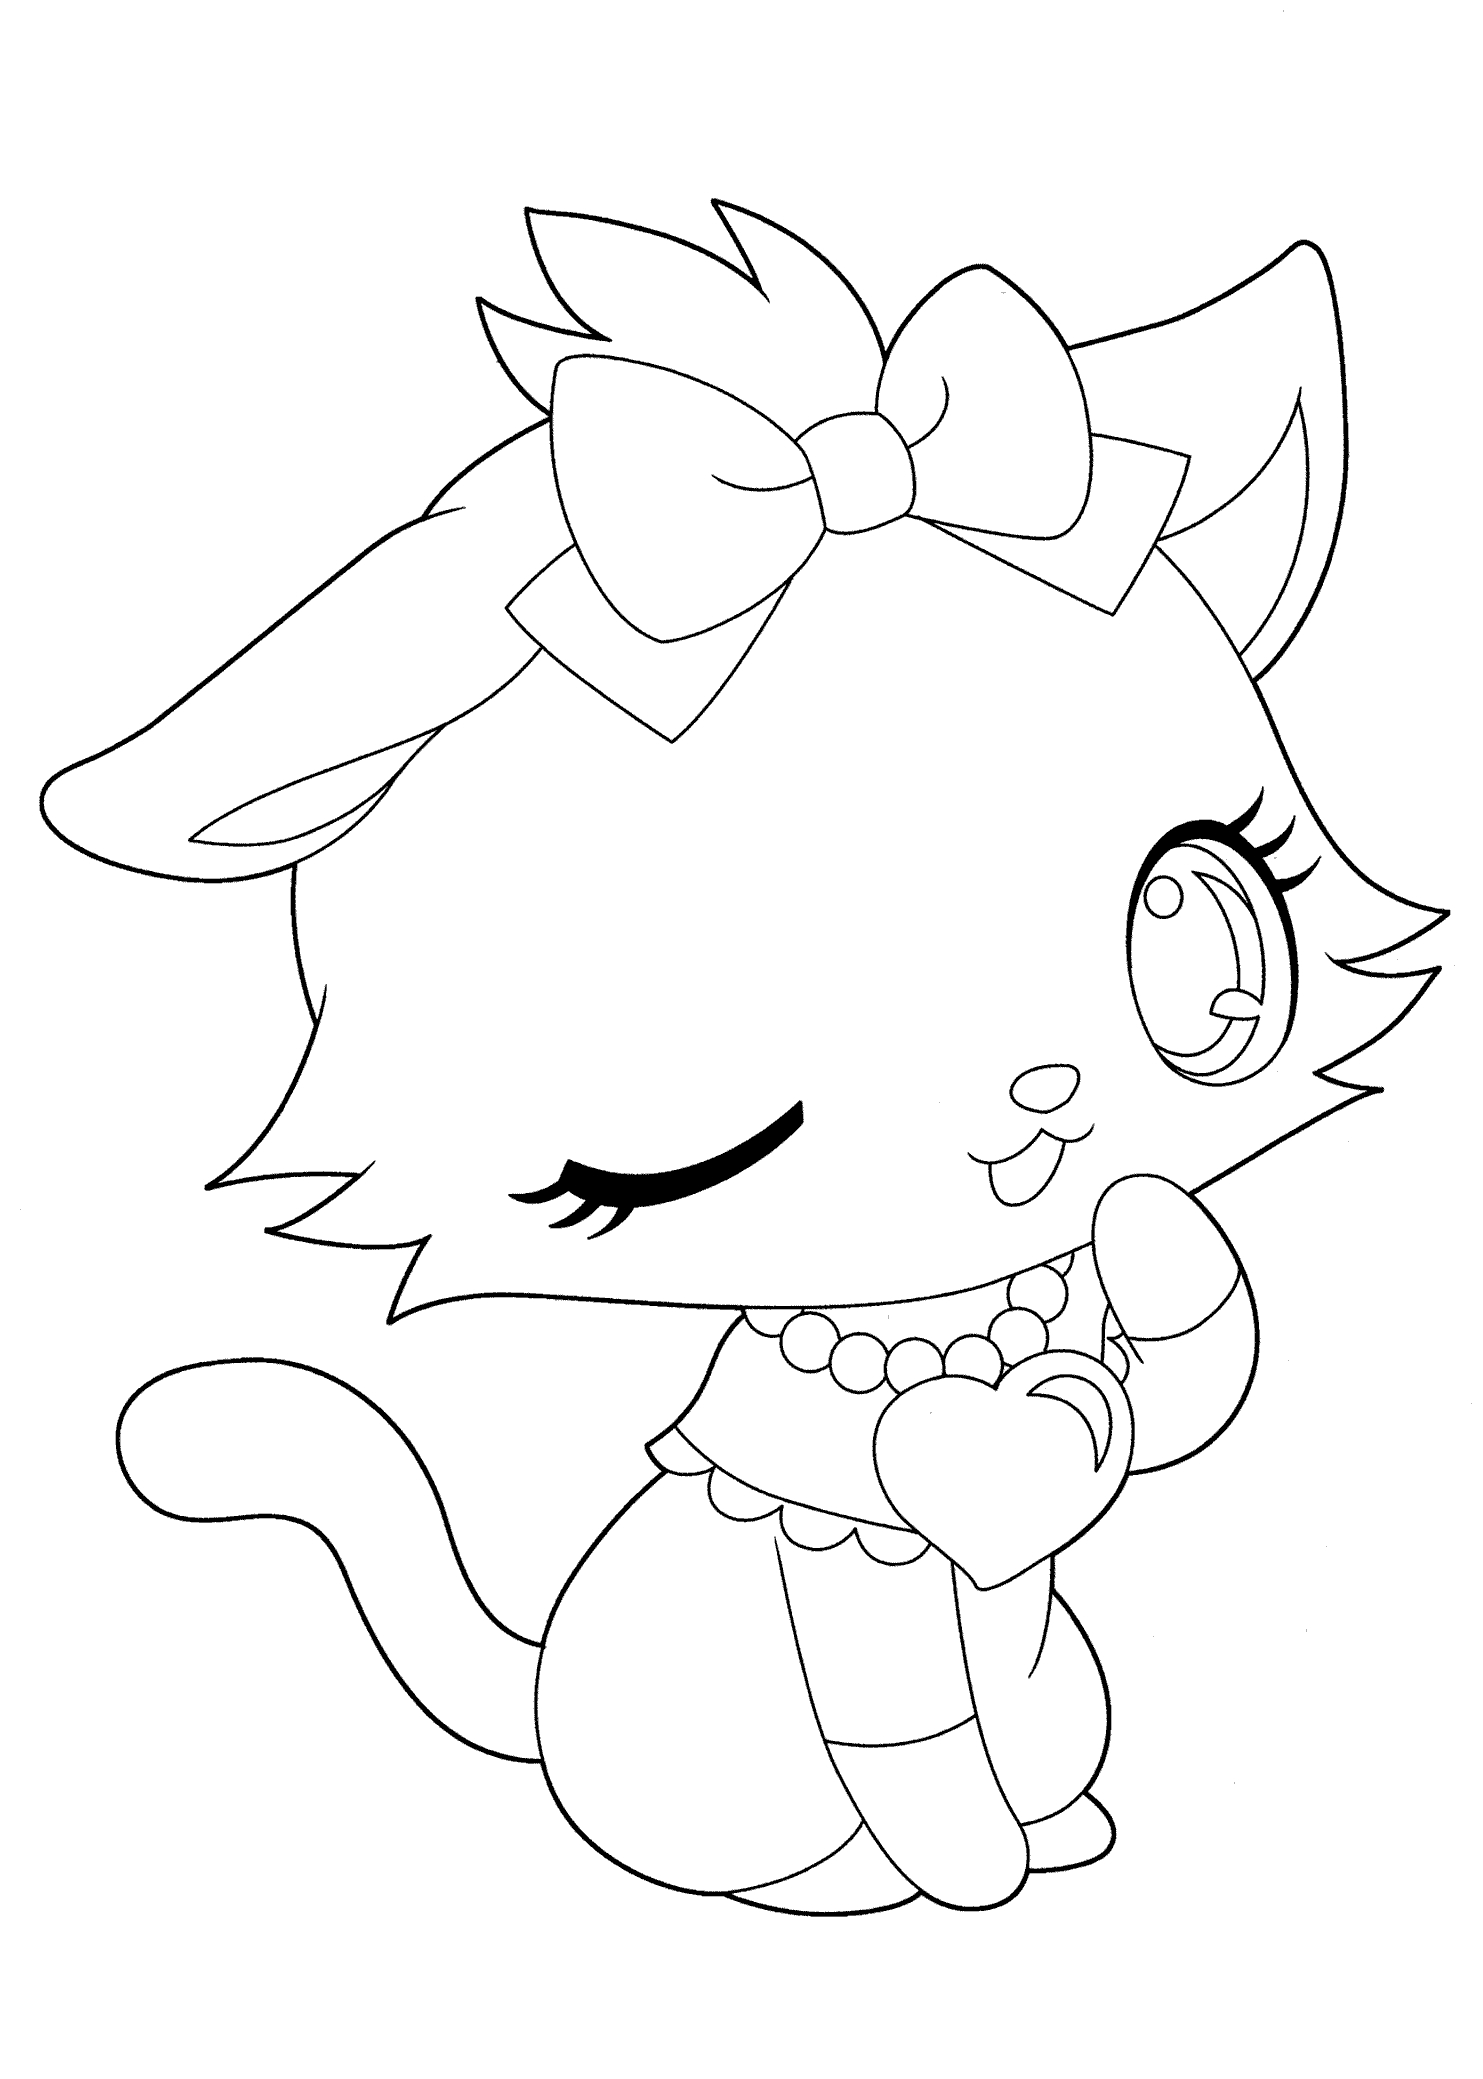 1483x2079 New Cutekawaii Animal Coloring Pages Design Printable Coloring Sheet